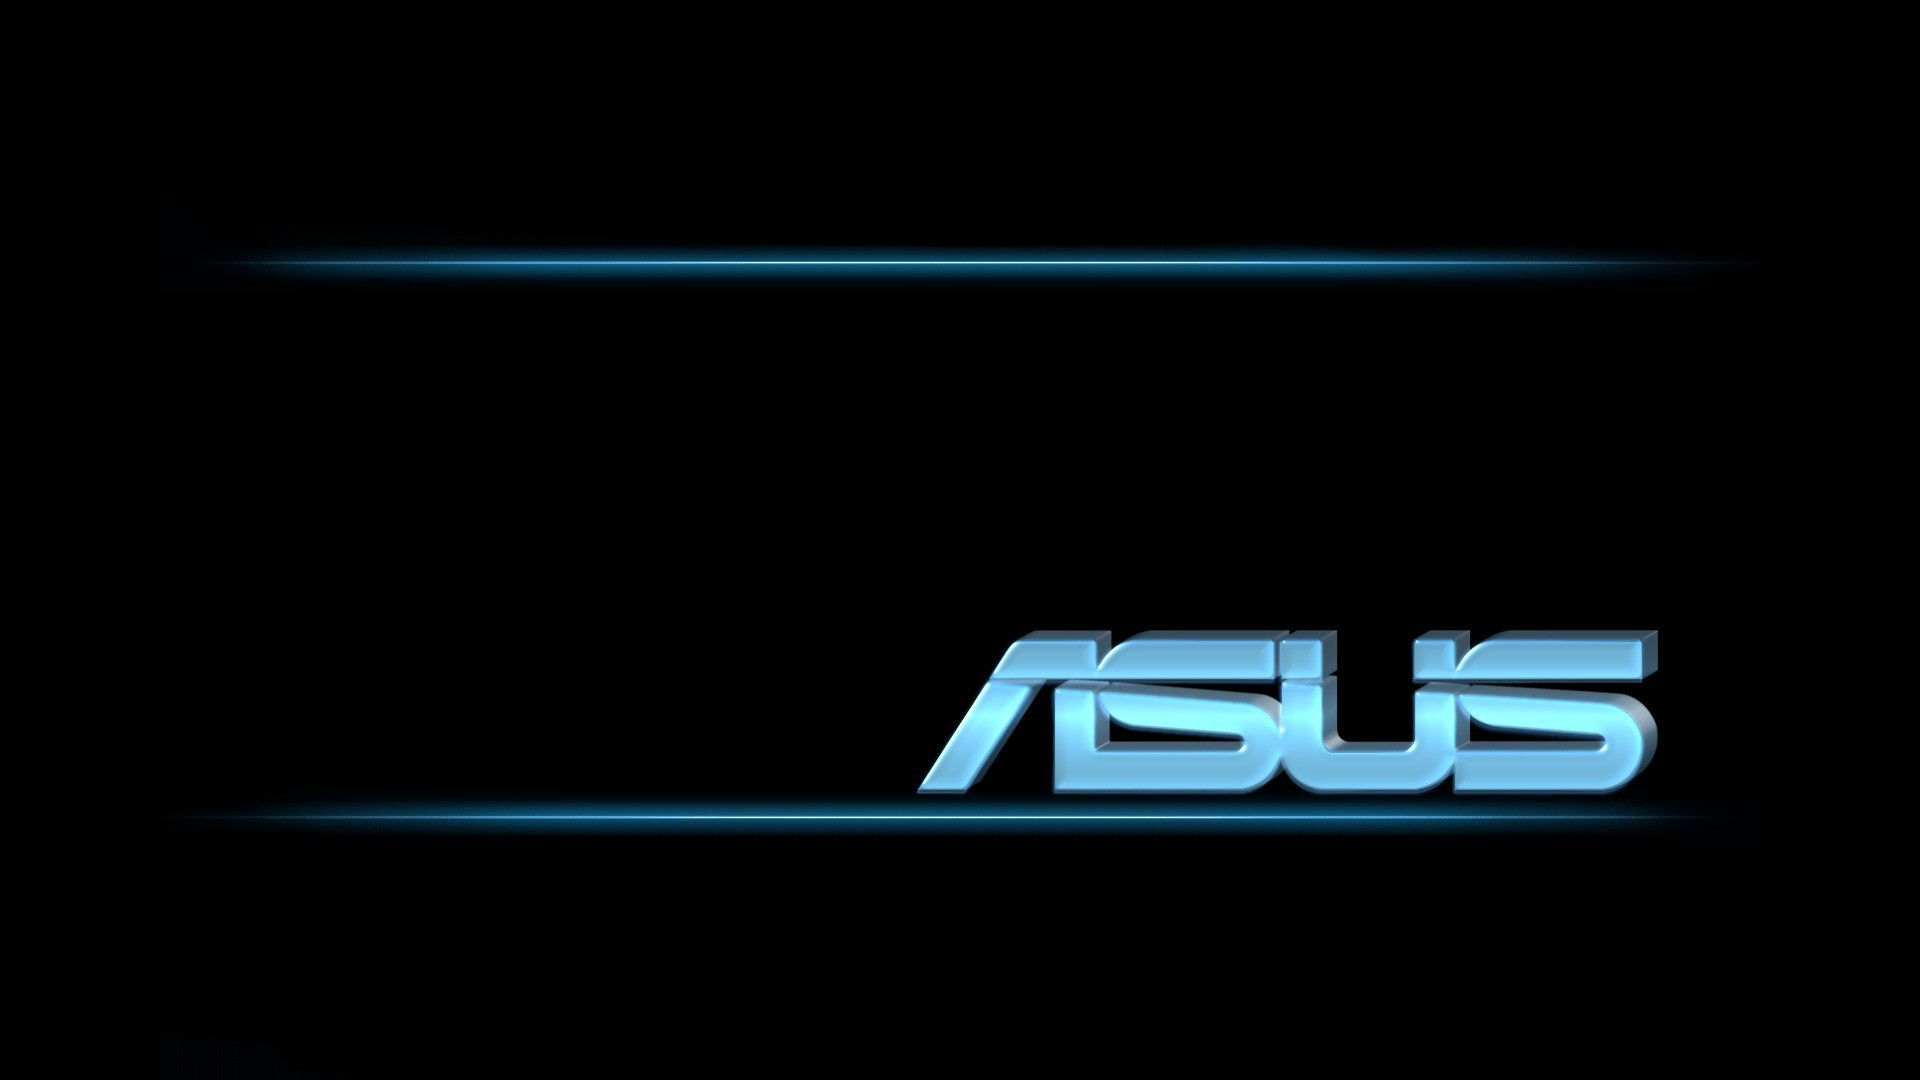 Asus Wallpapers New 2016 . Best High Resolution Desktop Android .